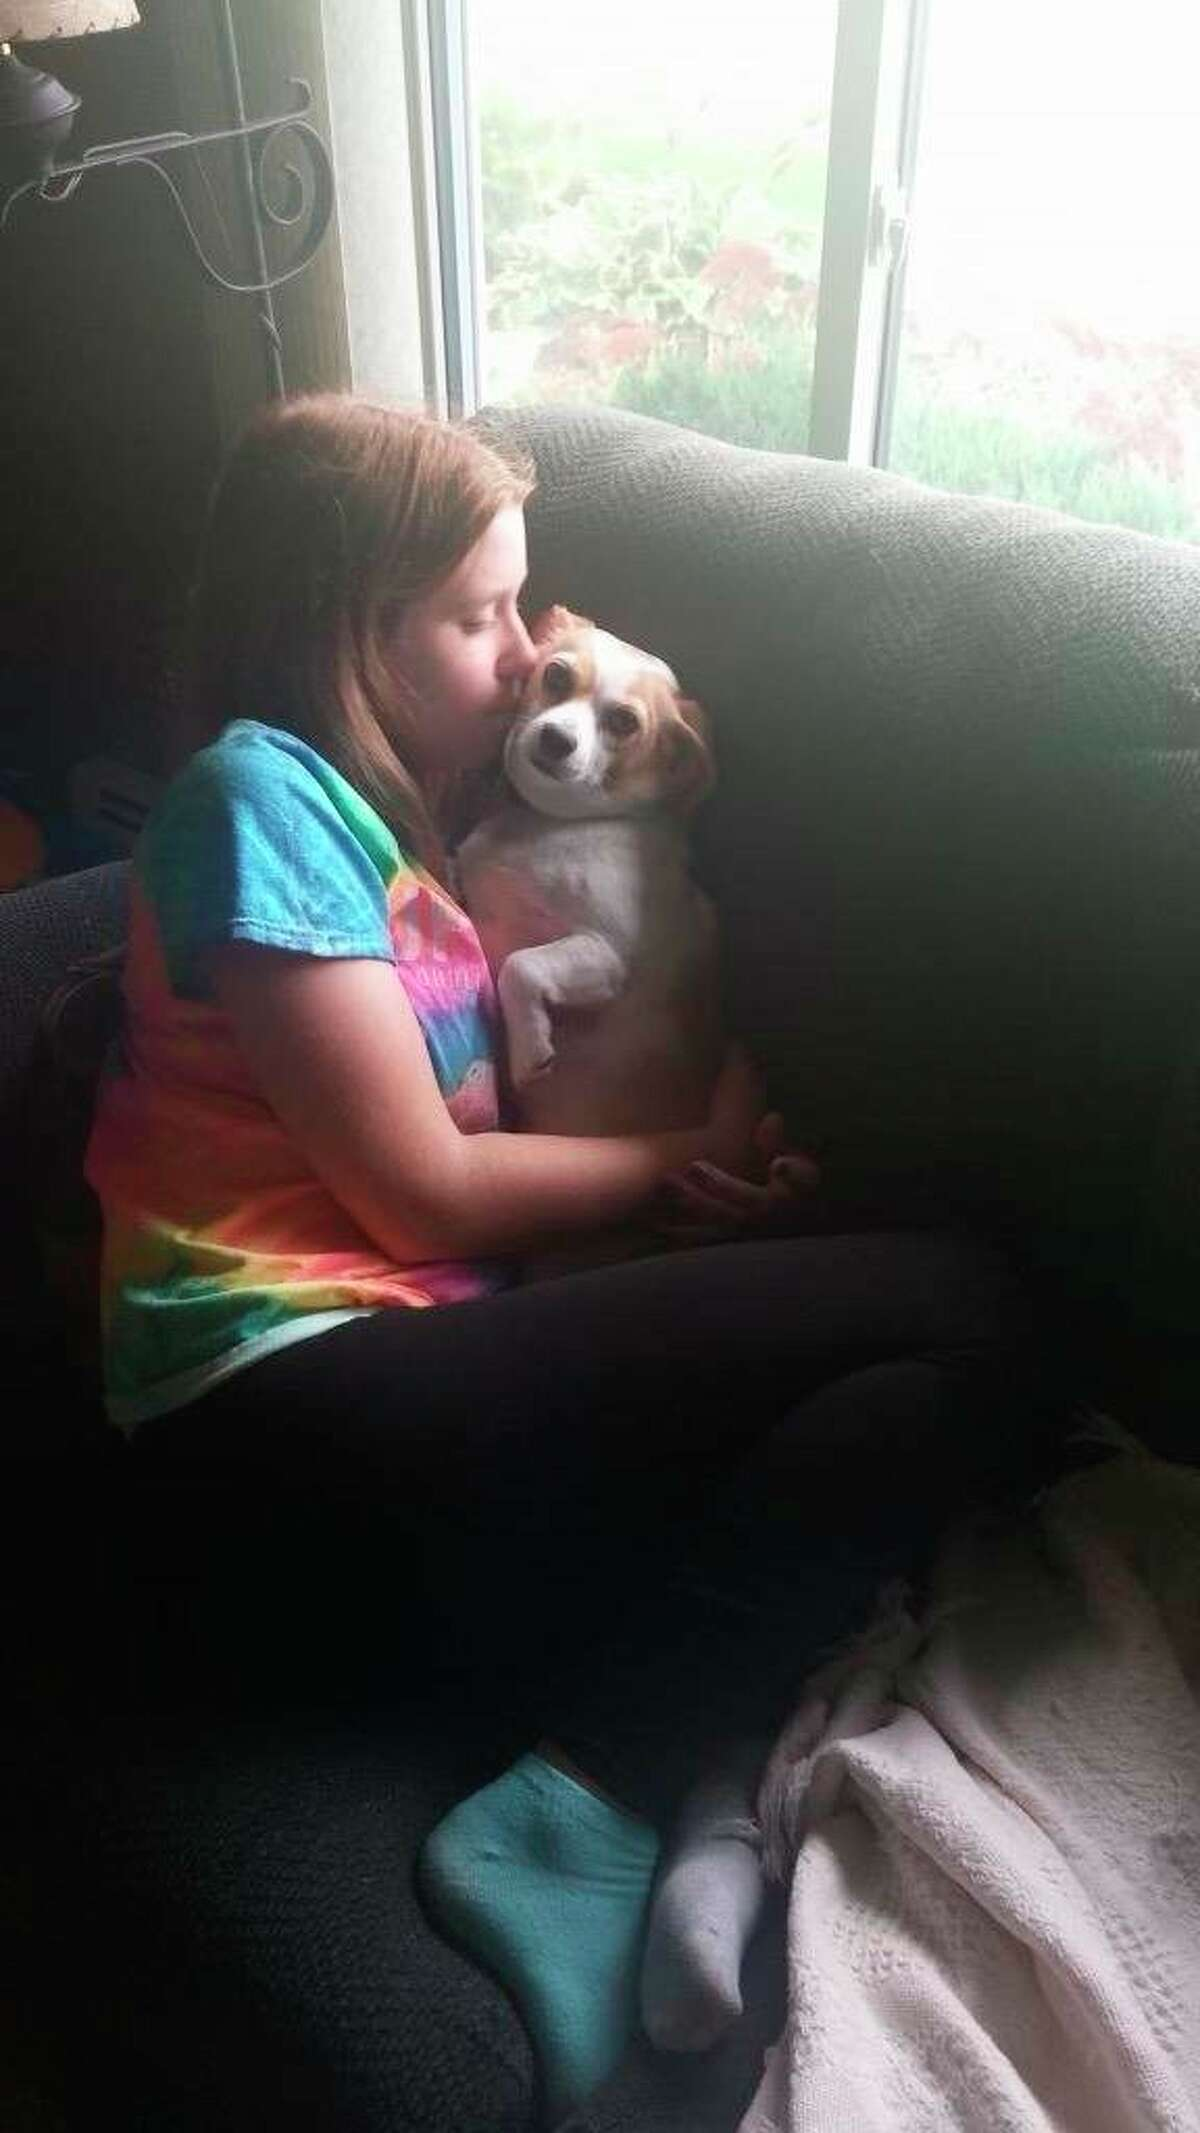 Kaitlyn Dill, 21 of Freeland is facing-down leukemia for the third time since she was 5 years old. She said her dog, Rylee, is one of the faces that helps her get through each day, along with the many supporters. A family friend started a GofundMe page for Dill. (Photo provided)